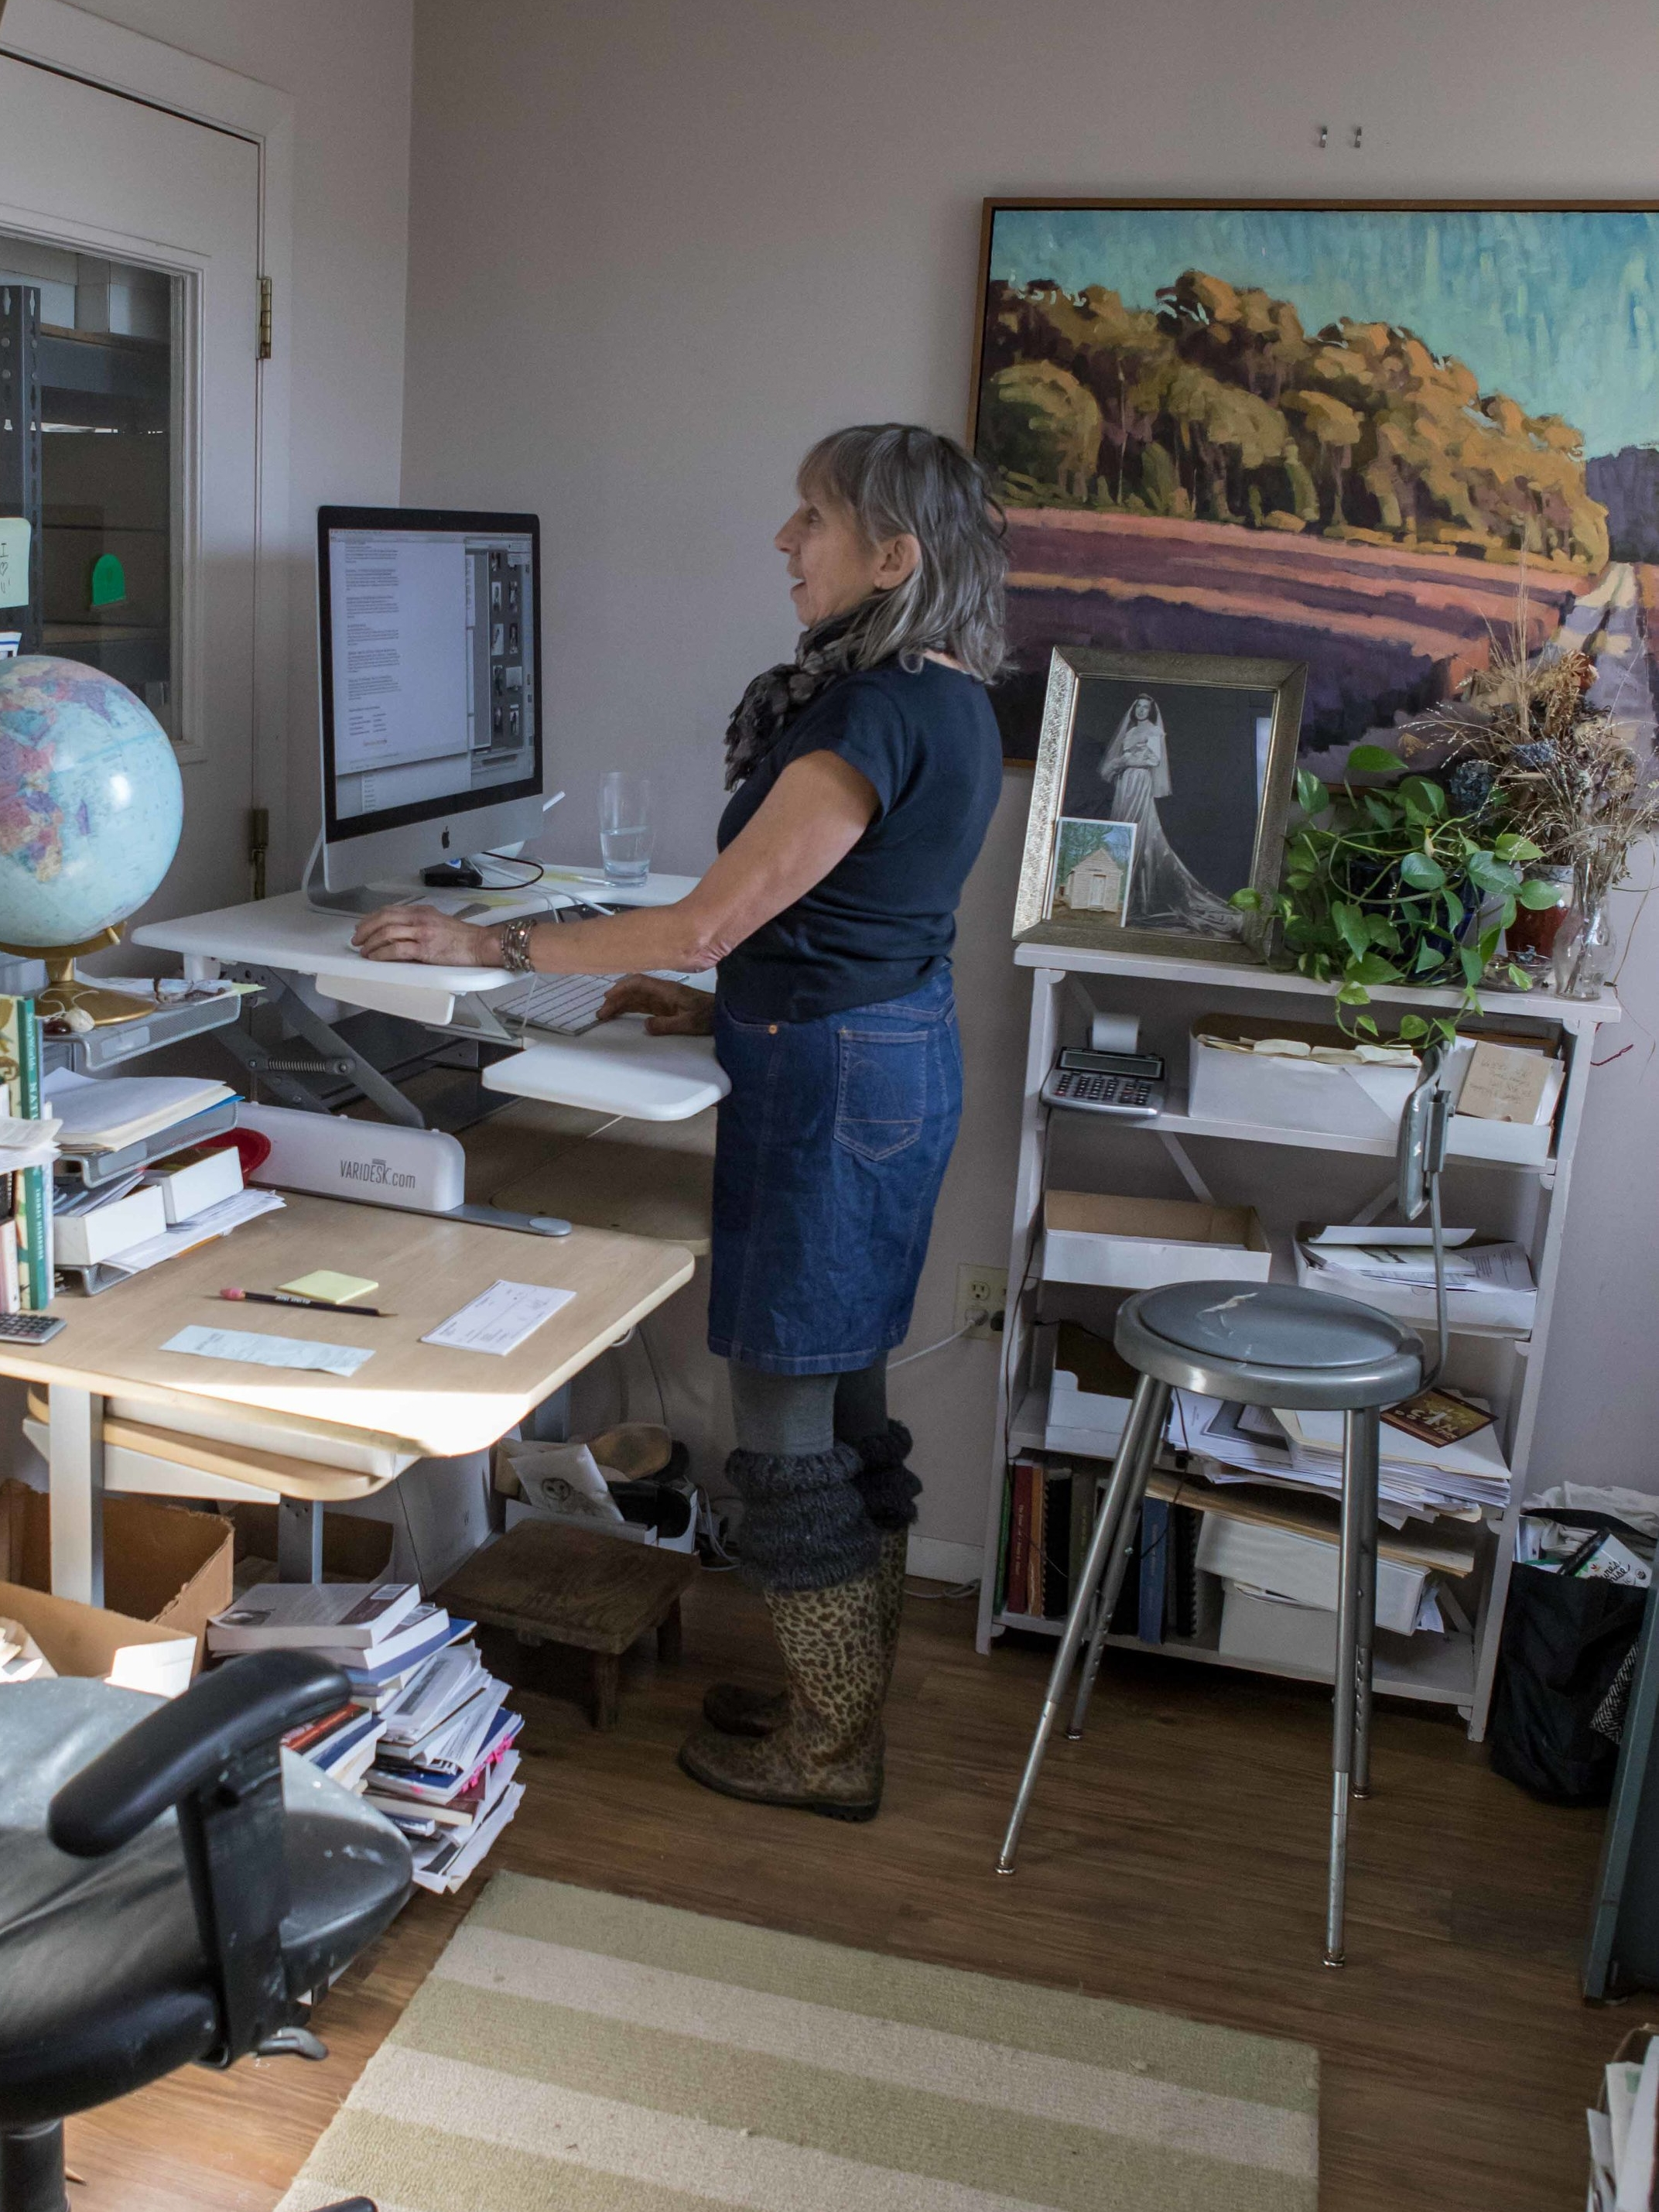 Janet Holladay - The Tisbury Printer's longest standing employee (since 1984),Janet heads the book design and special project department (of one). It's with great passion and patience that she immerses herself in her work, helping authors and organizations translate their vision onto the page.Ballroom dancer extraordinaire.